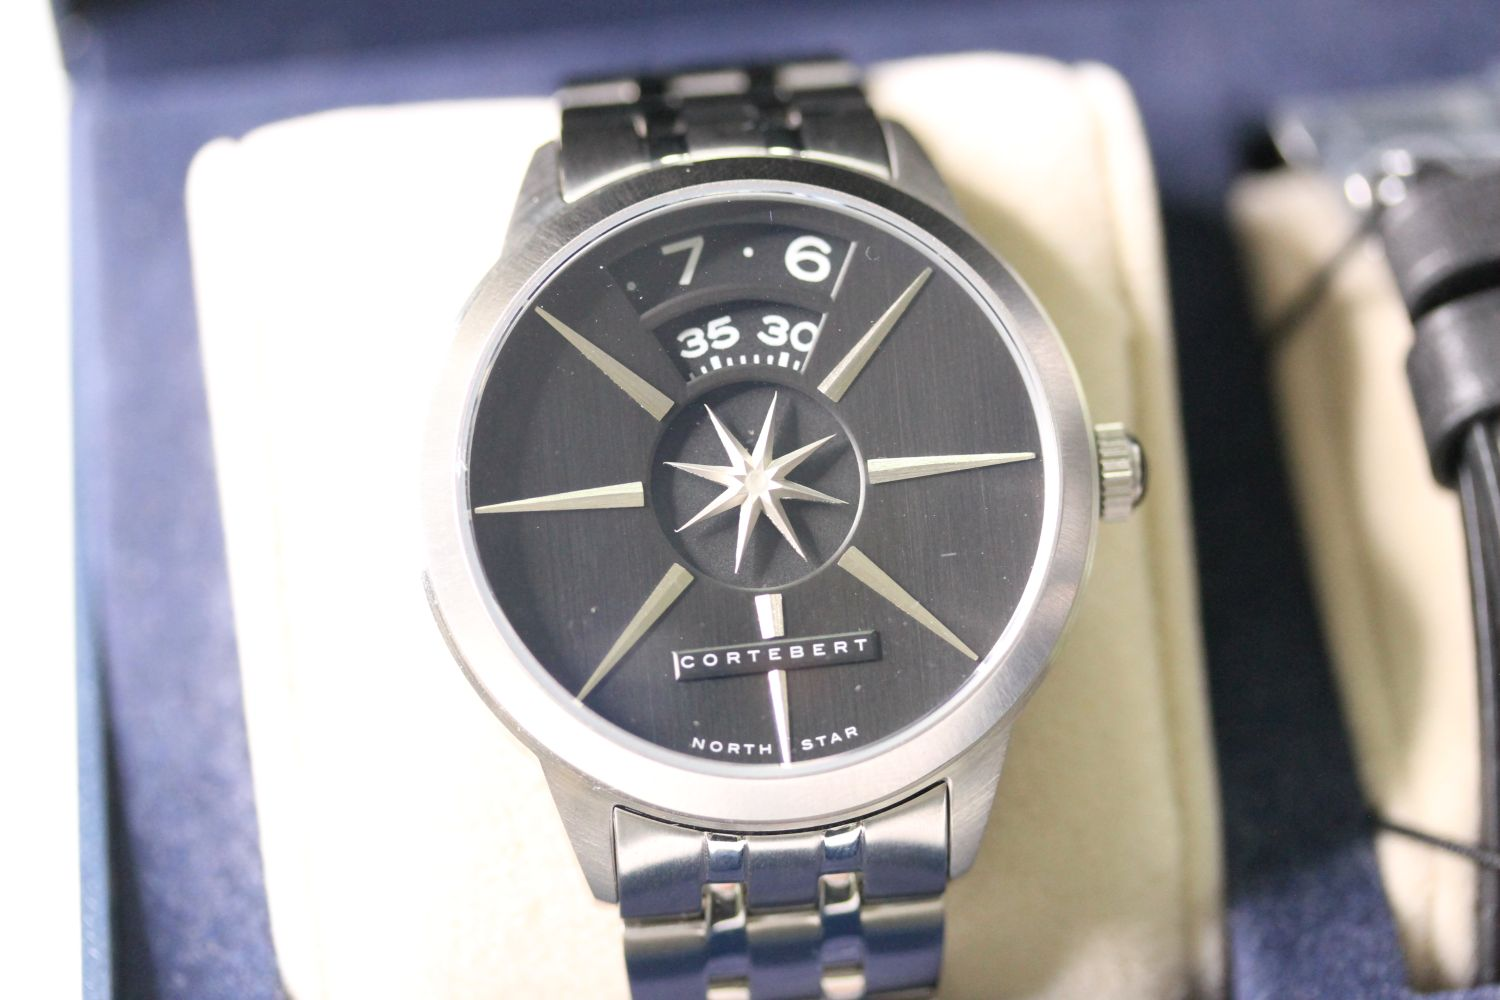 CORTEBERT CELESTIAL NORTH STAR WITH BOX AND PAPERS lIMITED EDITION, circular black dial, day and - Image 2 of 2